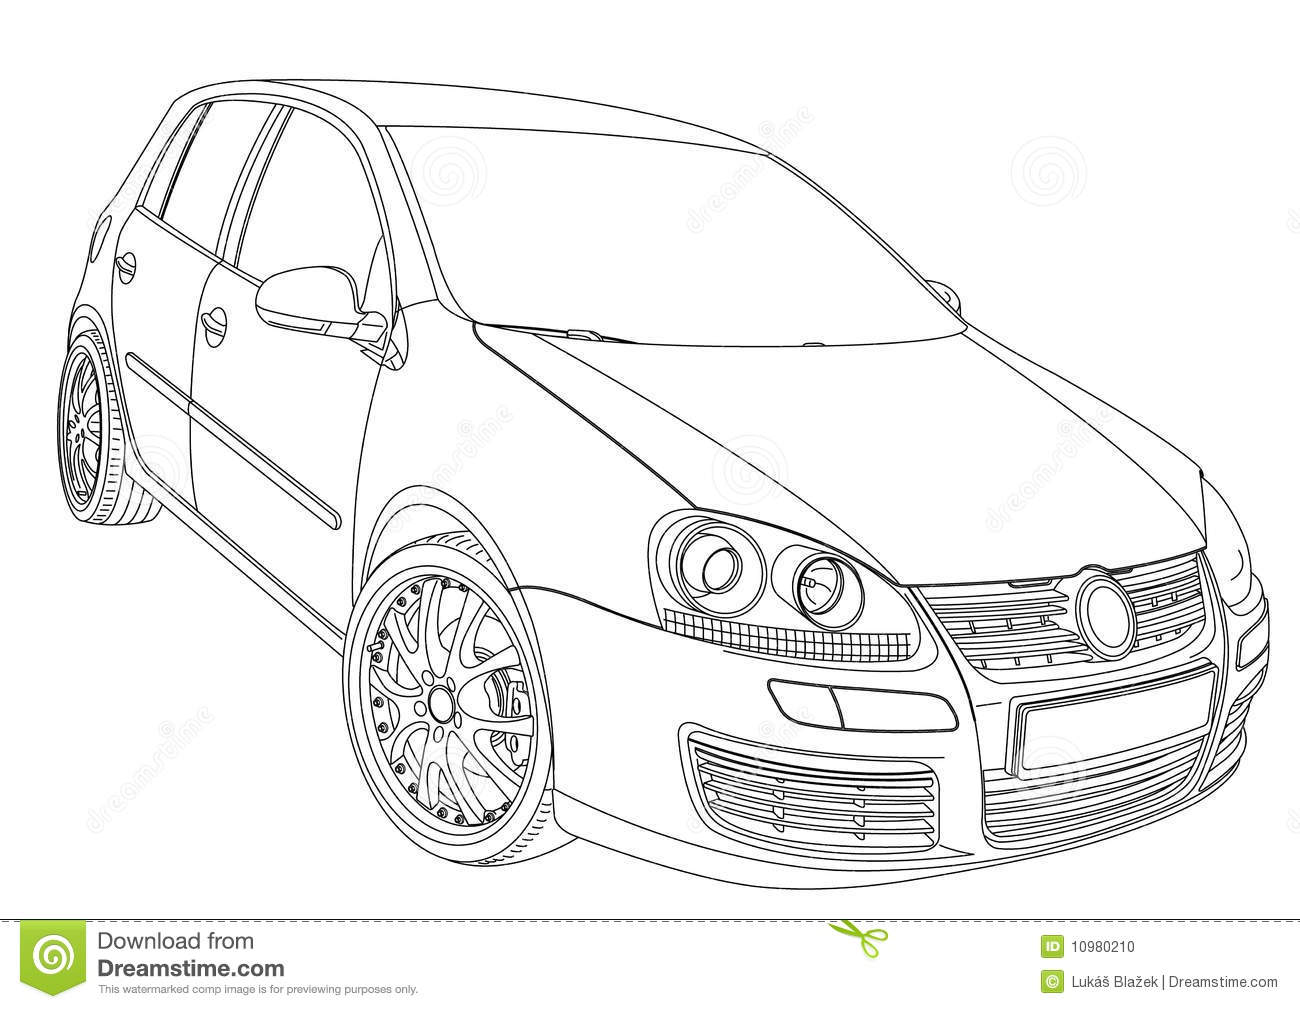 Foto O Diagrama De Valvuras De Vacio Y Conectadas Al Carburador De Golf A2 1988 18 likewise Sicherung1 I203176320 further Most Loved Car Blueprints For 3d Modeling together with Golf Iv 1 4 16s Amenophis Controle Technique 2013 T53025 25 in addition Under Armour Logo. on volkswagen golf